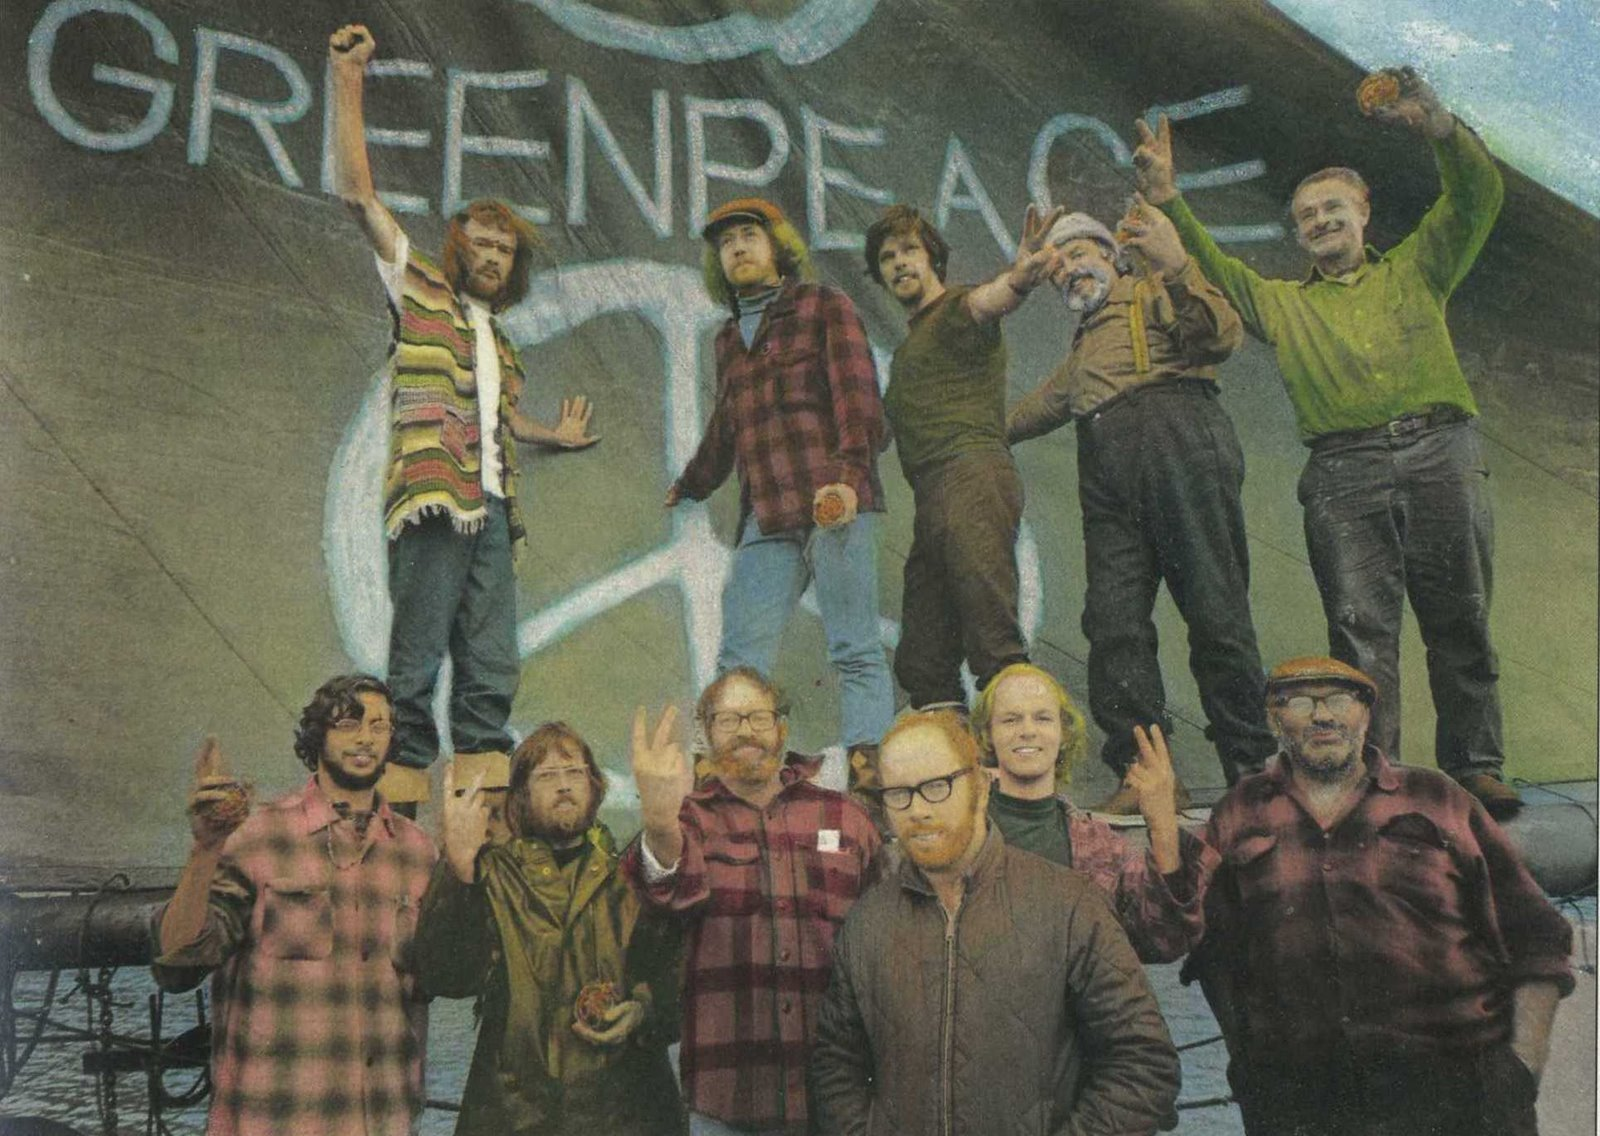 The crew of the original Greenpeace mission to Amchitka. The two guy on the lower right with his hands in his pockets is Captain Cormack.